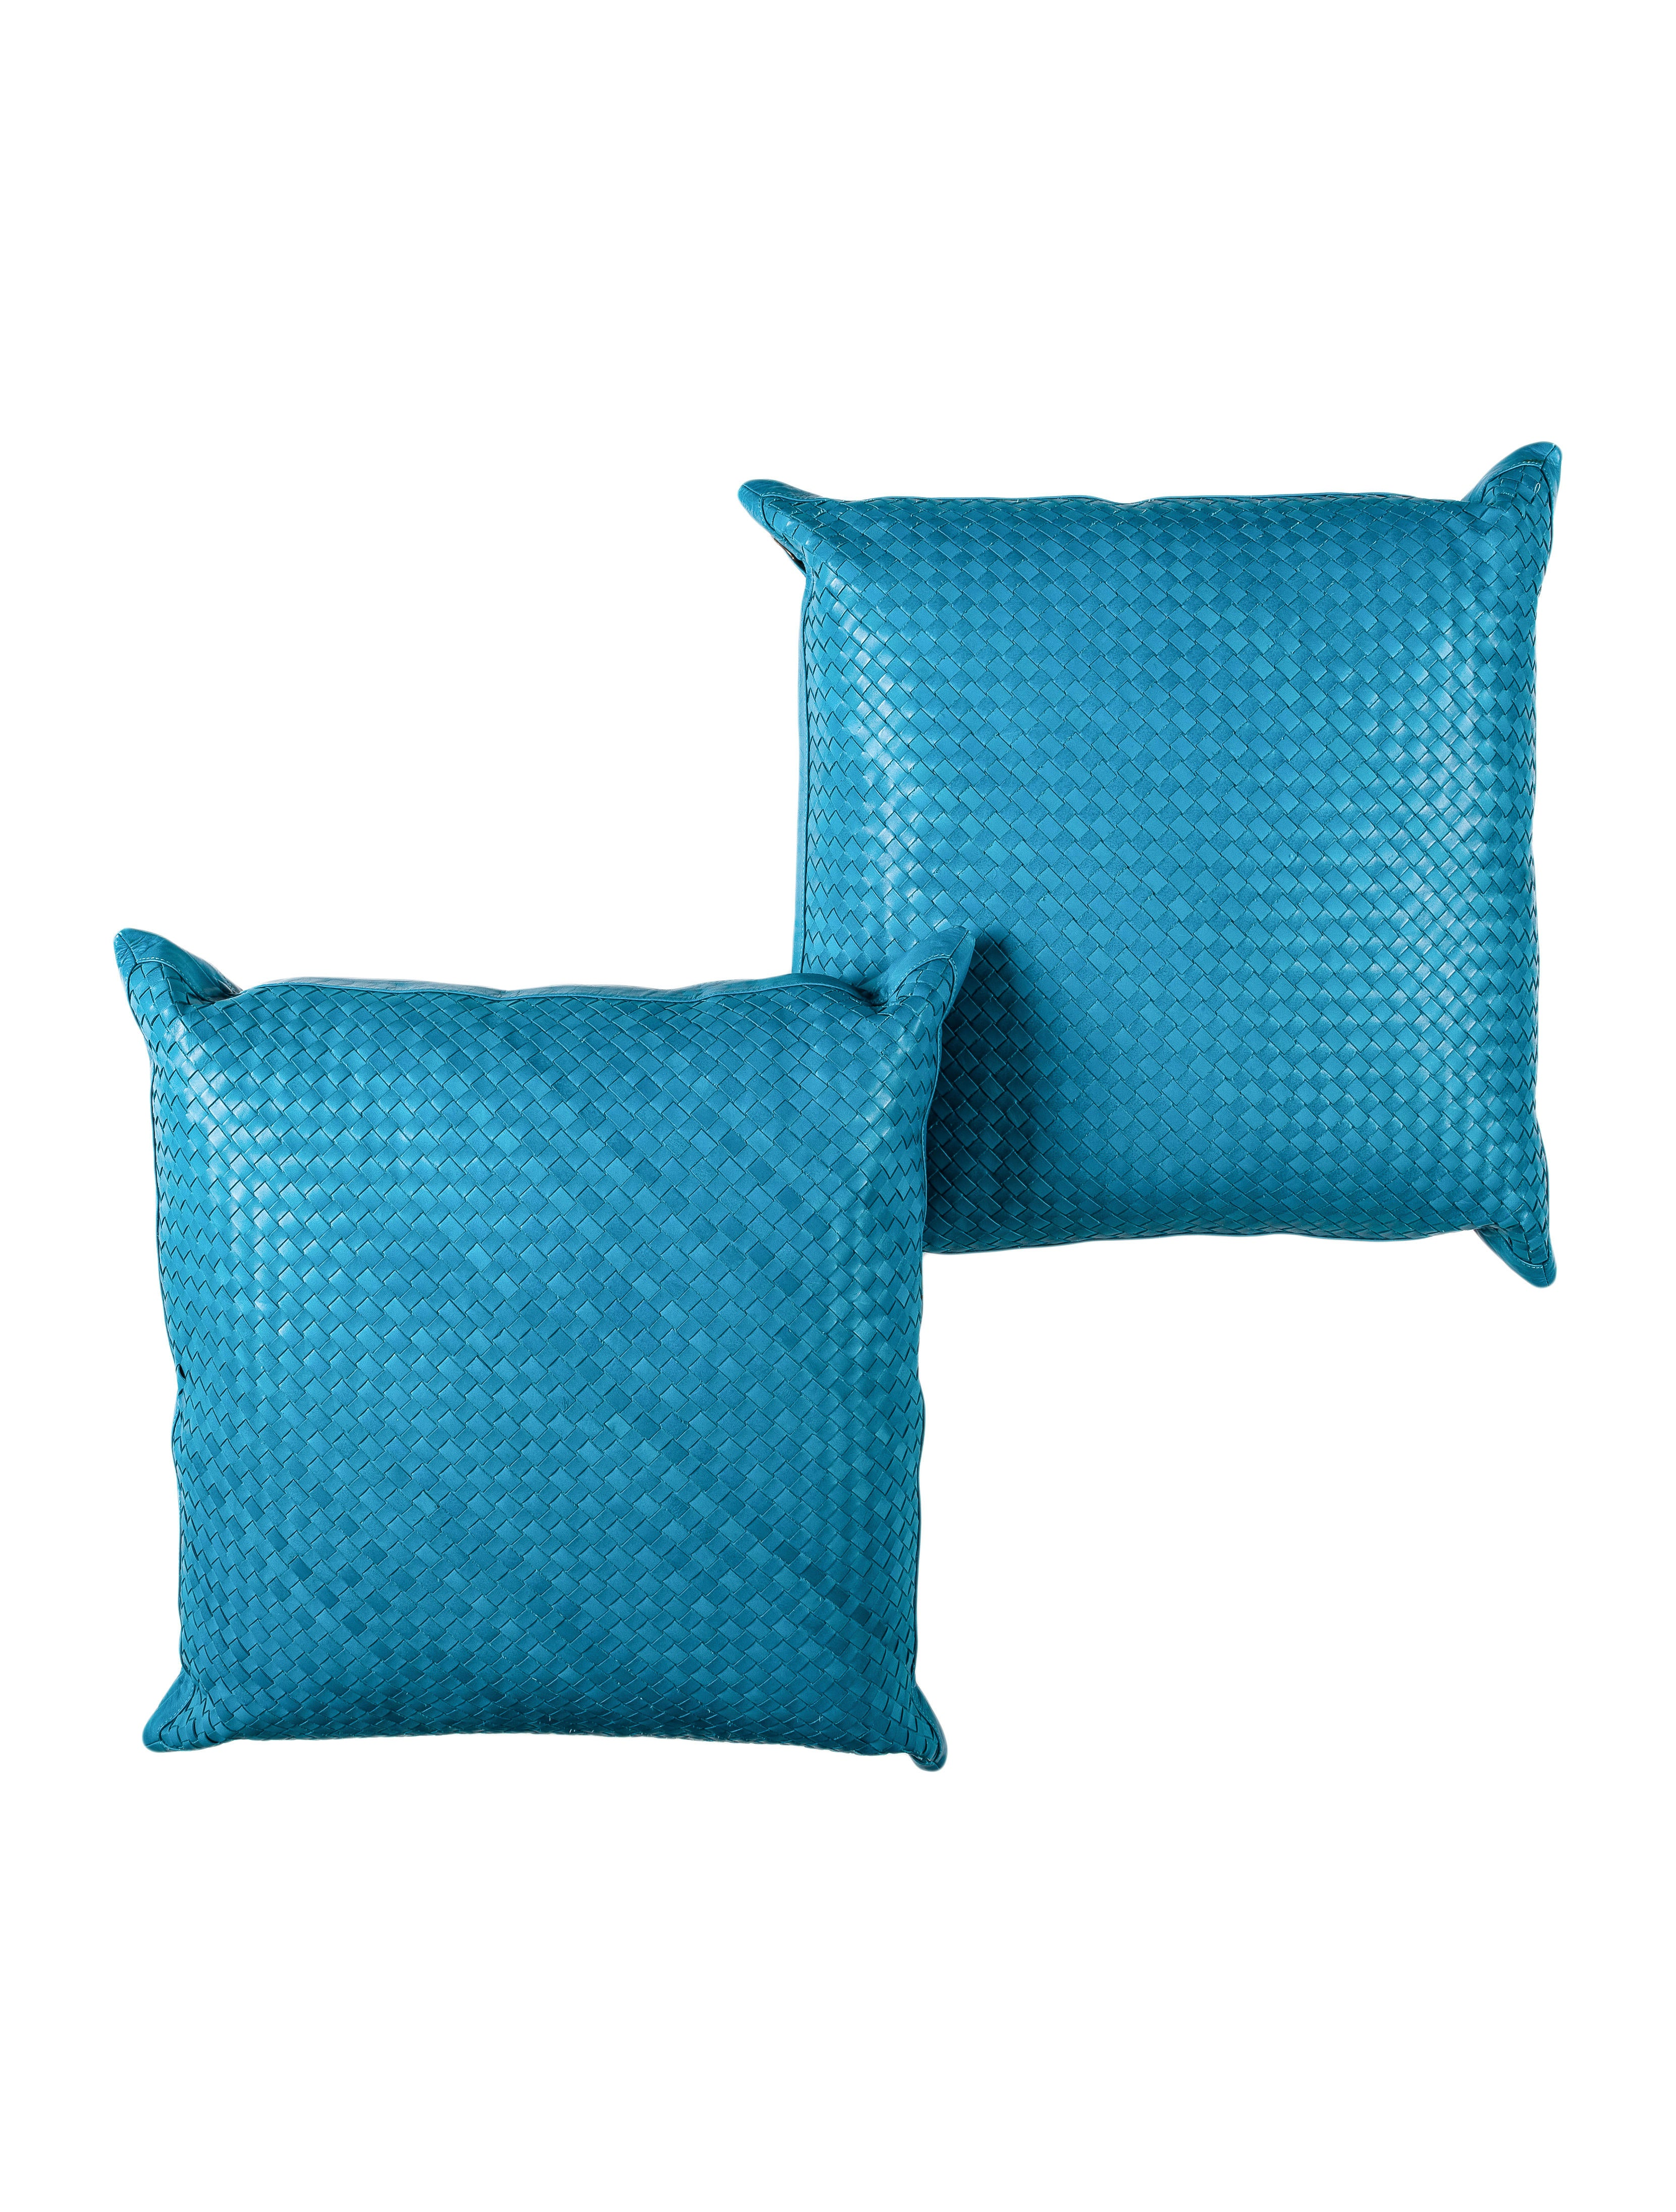 Throw Pillows Set : Lance Woven Leather Throw Pillow Set - Pillows And Throws - LCE20006 The RealReal